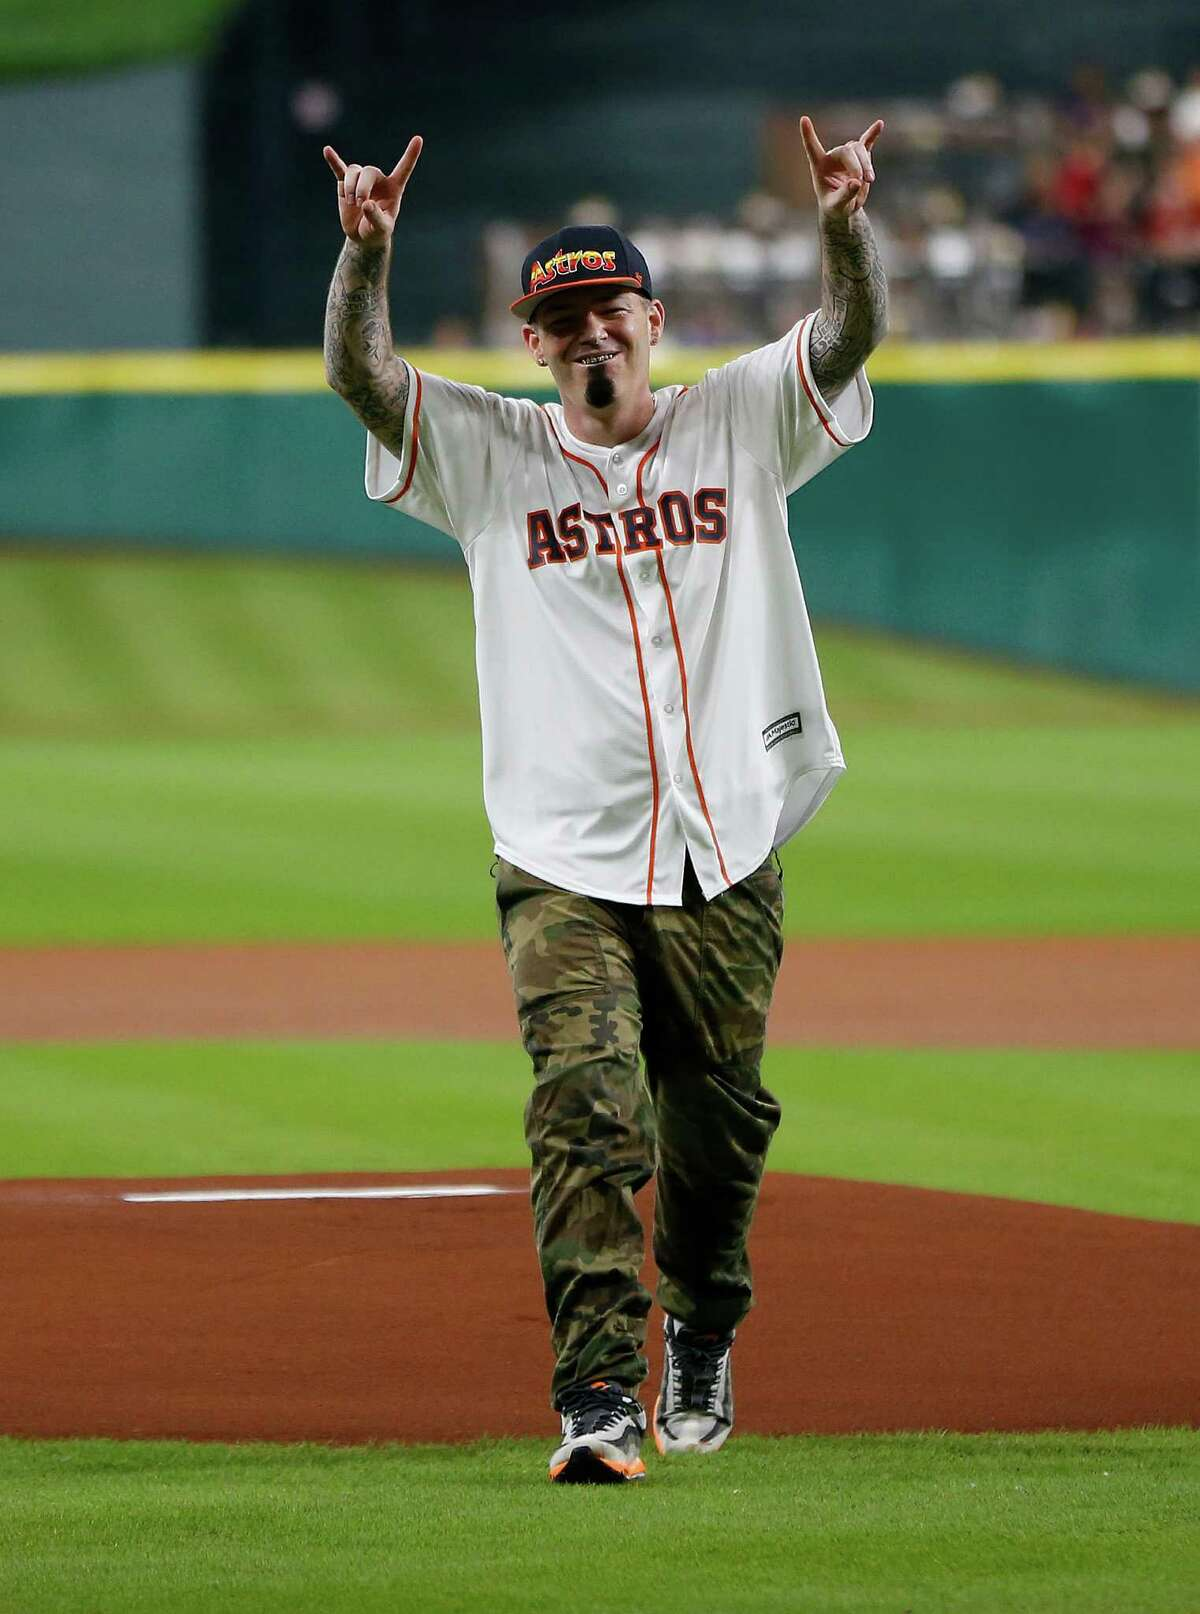 Rapper Paul Wall reacts after throwing out the first pitch before the start of an MLB game at Minute Maid Park,Tuesday, Aug. 16, 2016, in Houston.